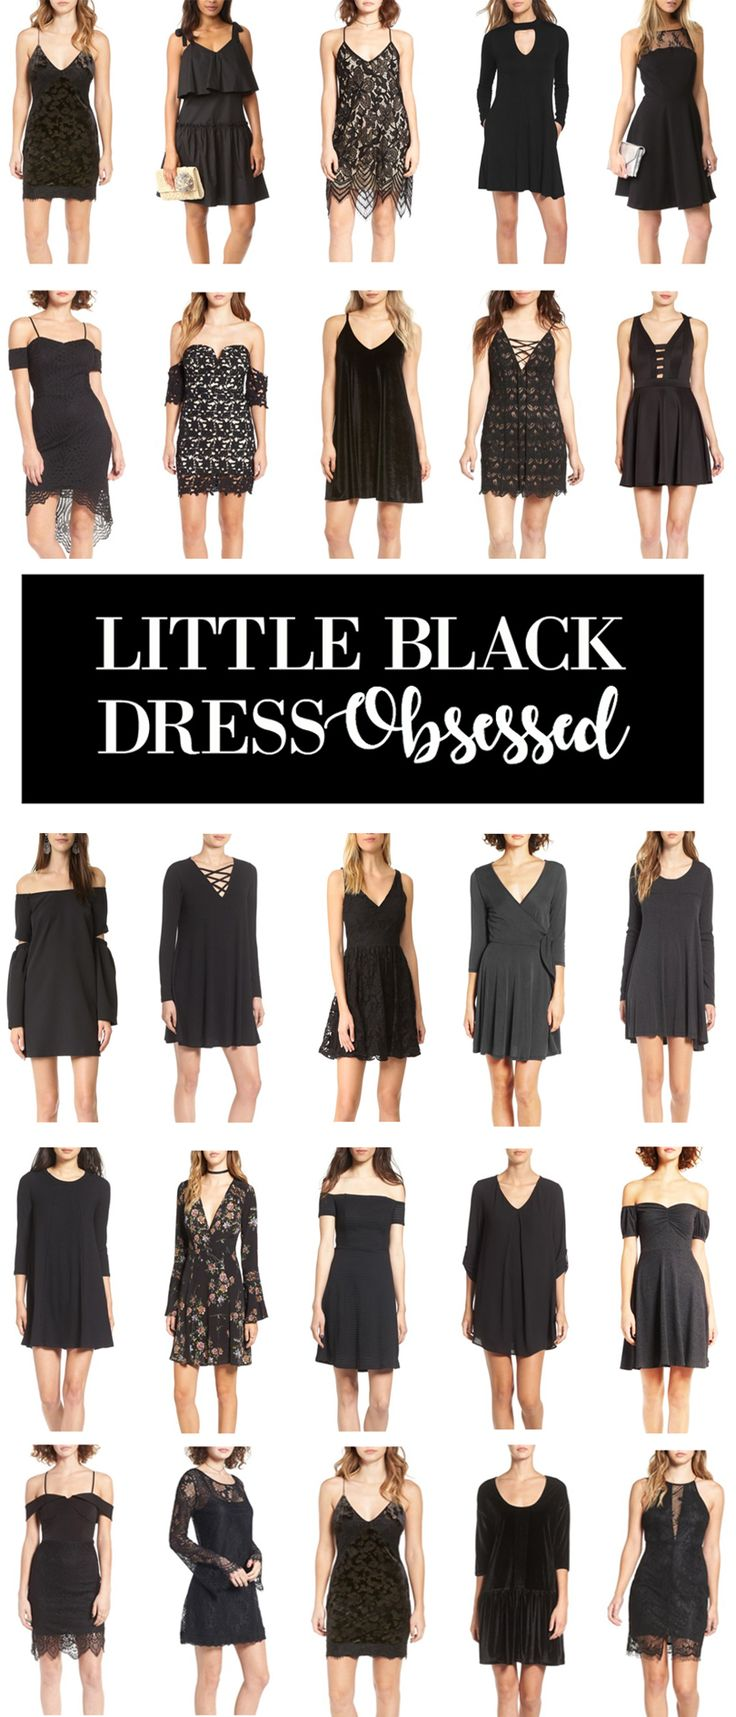 25 of the cutest little black dresses ALL UNDER $50!   Fashion blogger Mash Elle rounds up the most affordable black dresses from Nordstrom and Shopbop. Perfect for dates, anniversaries, parties and formal events!